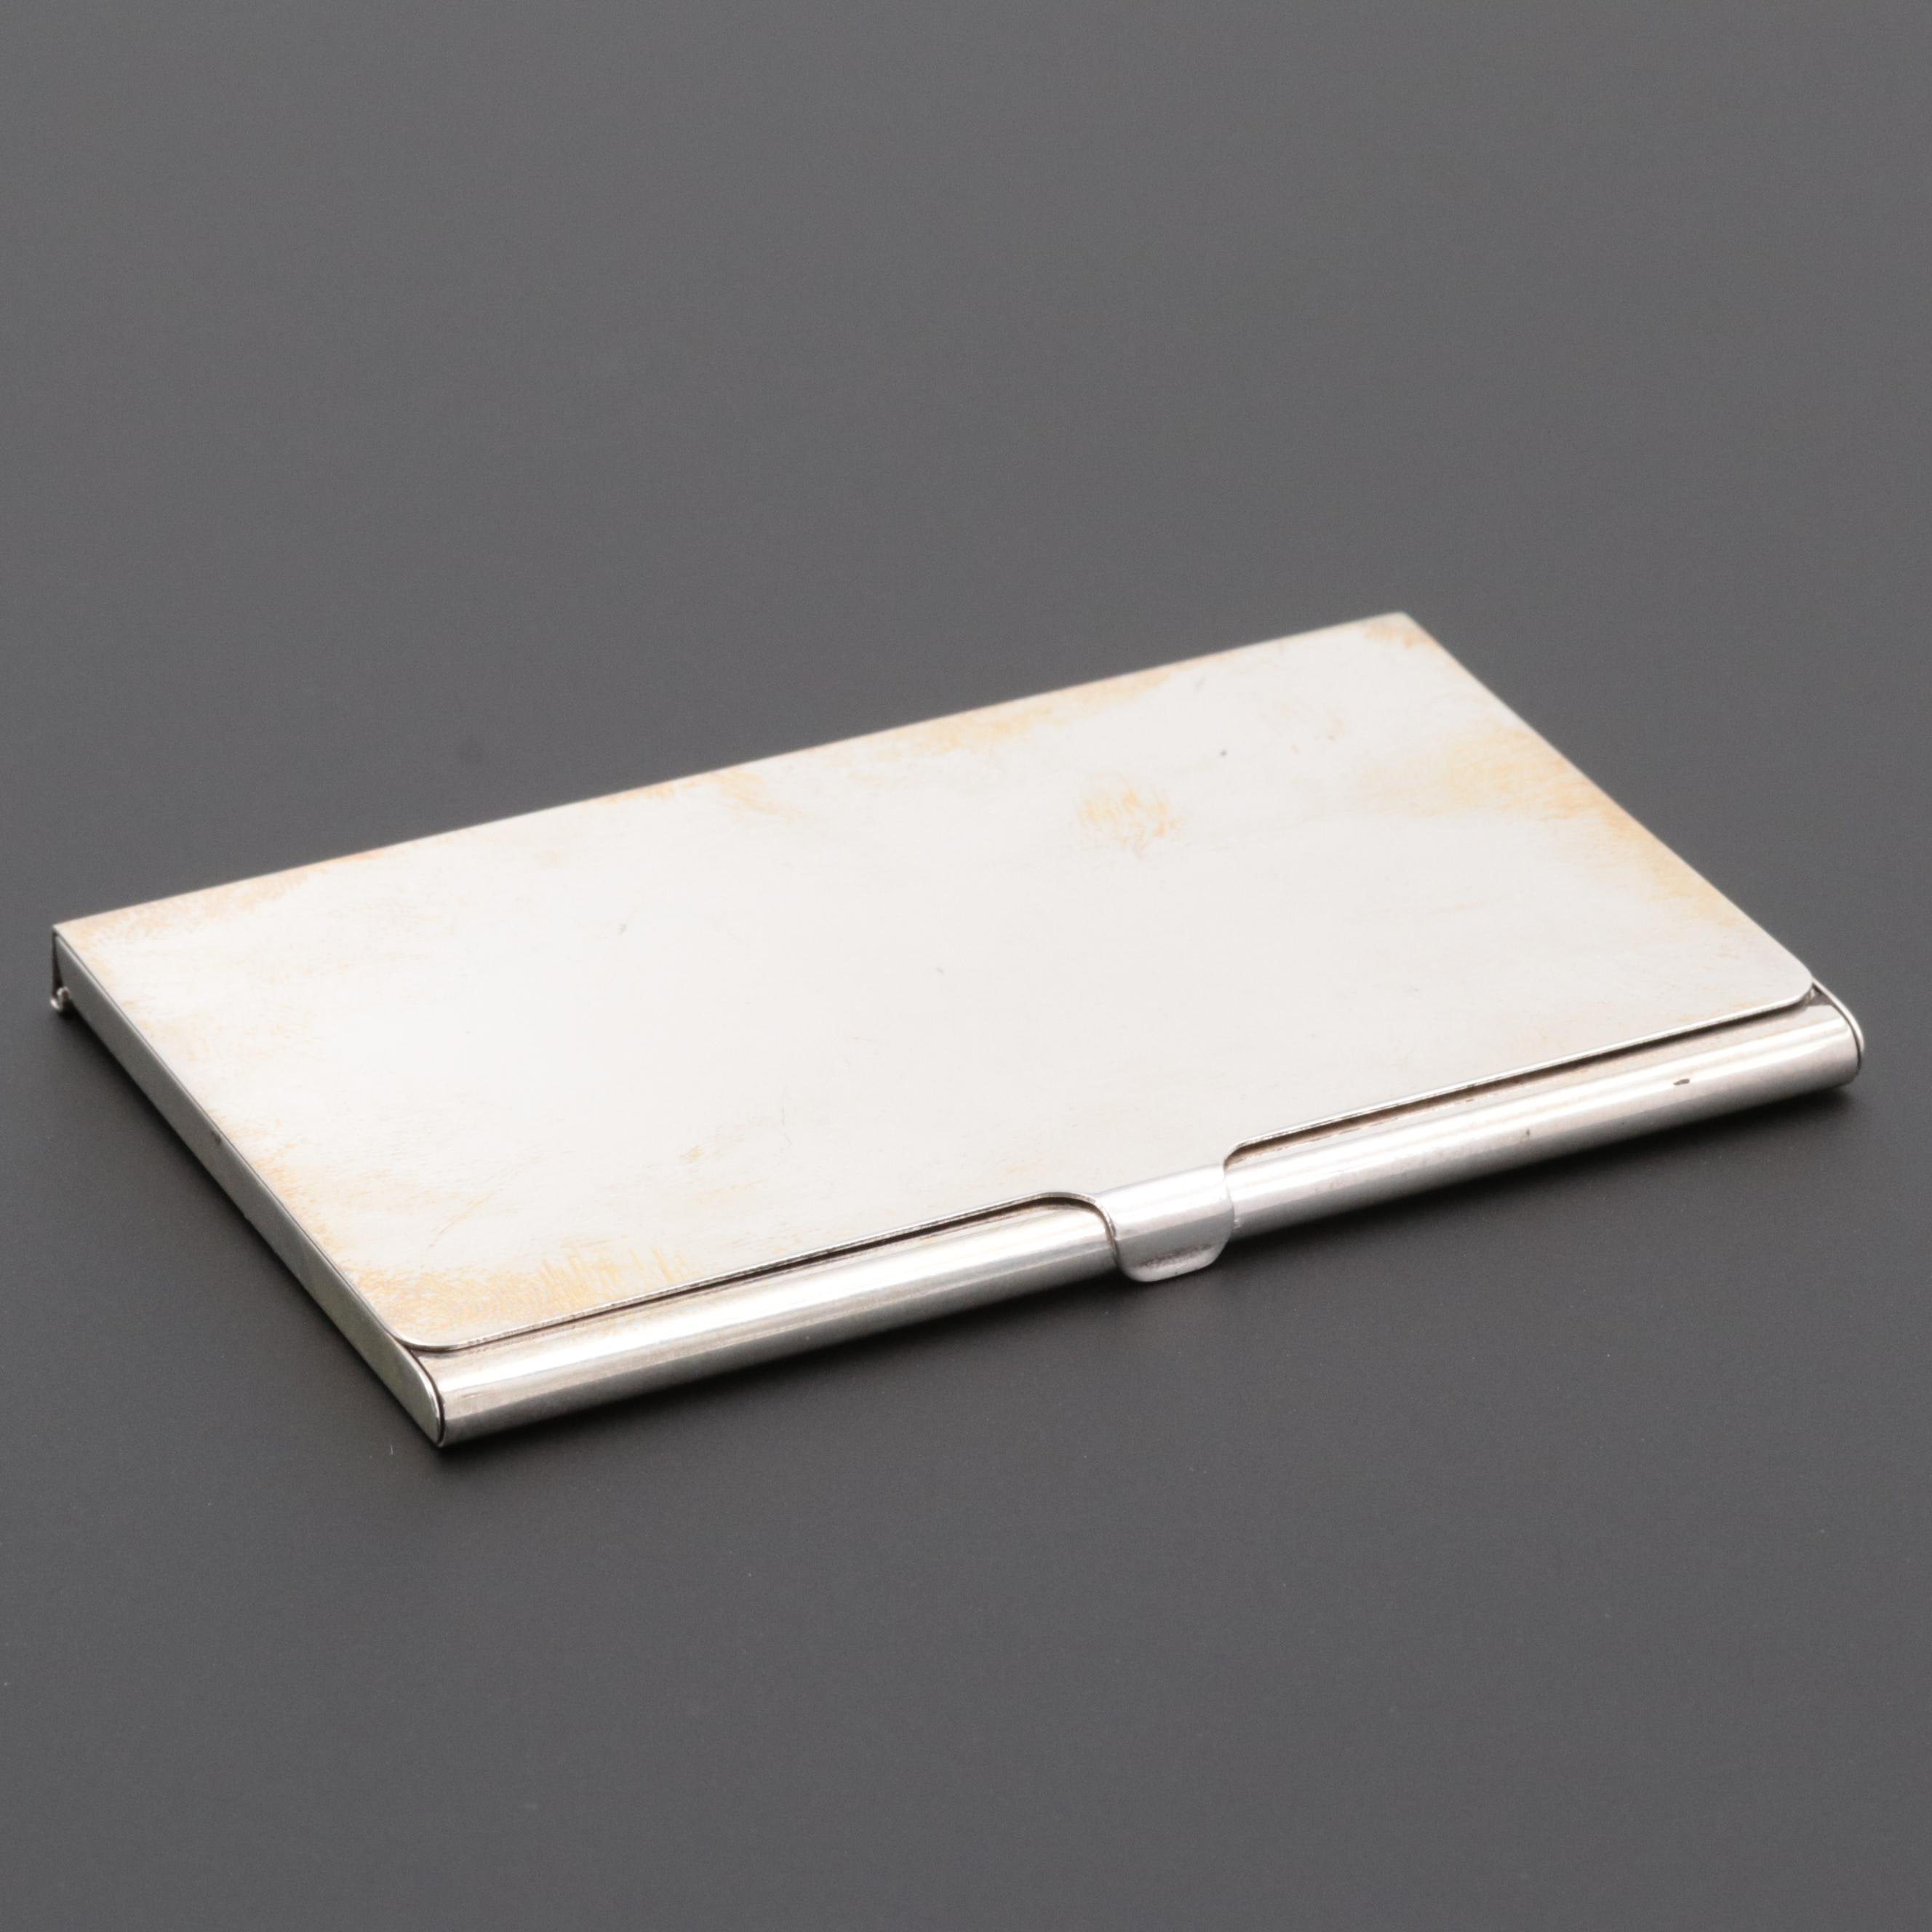 Tiffany & Co. Sterling Silver Business Card Case